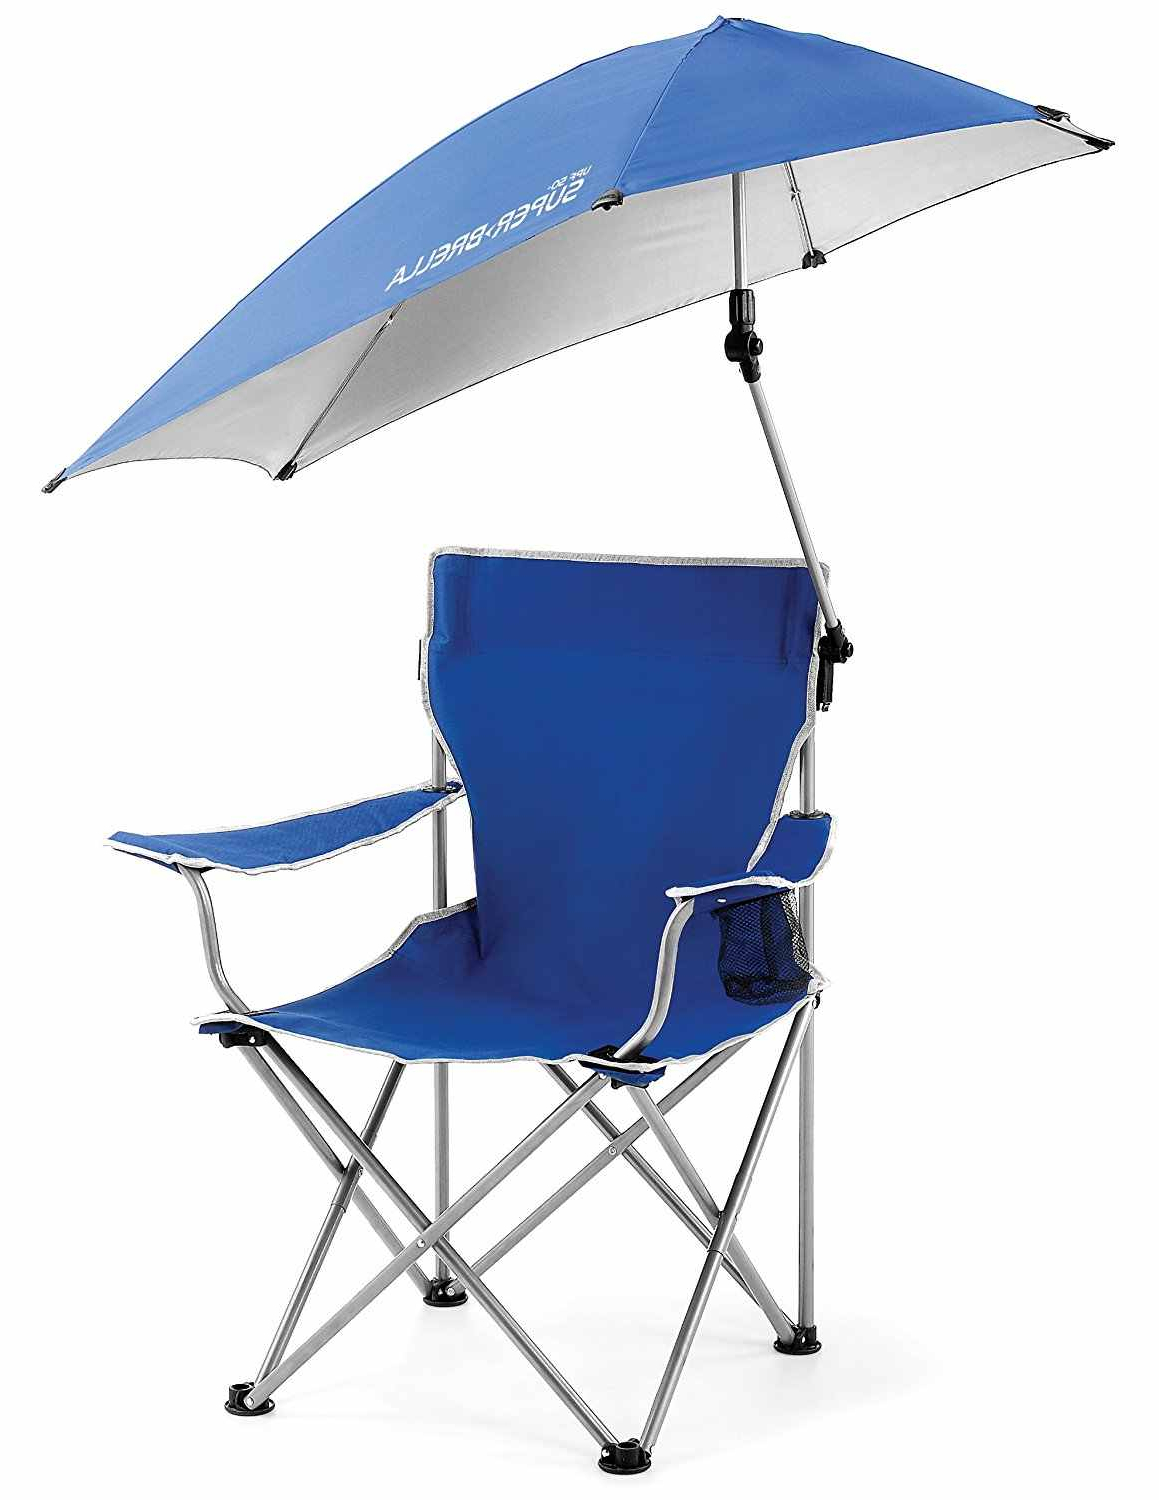 Current Folding Patio Lounge Beach Chairs With Canopy Throughout Outdoor Quik Shade Adjustable Canopy Folding Camp Chair (View 25 of 25)